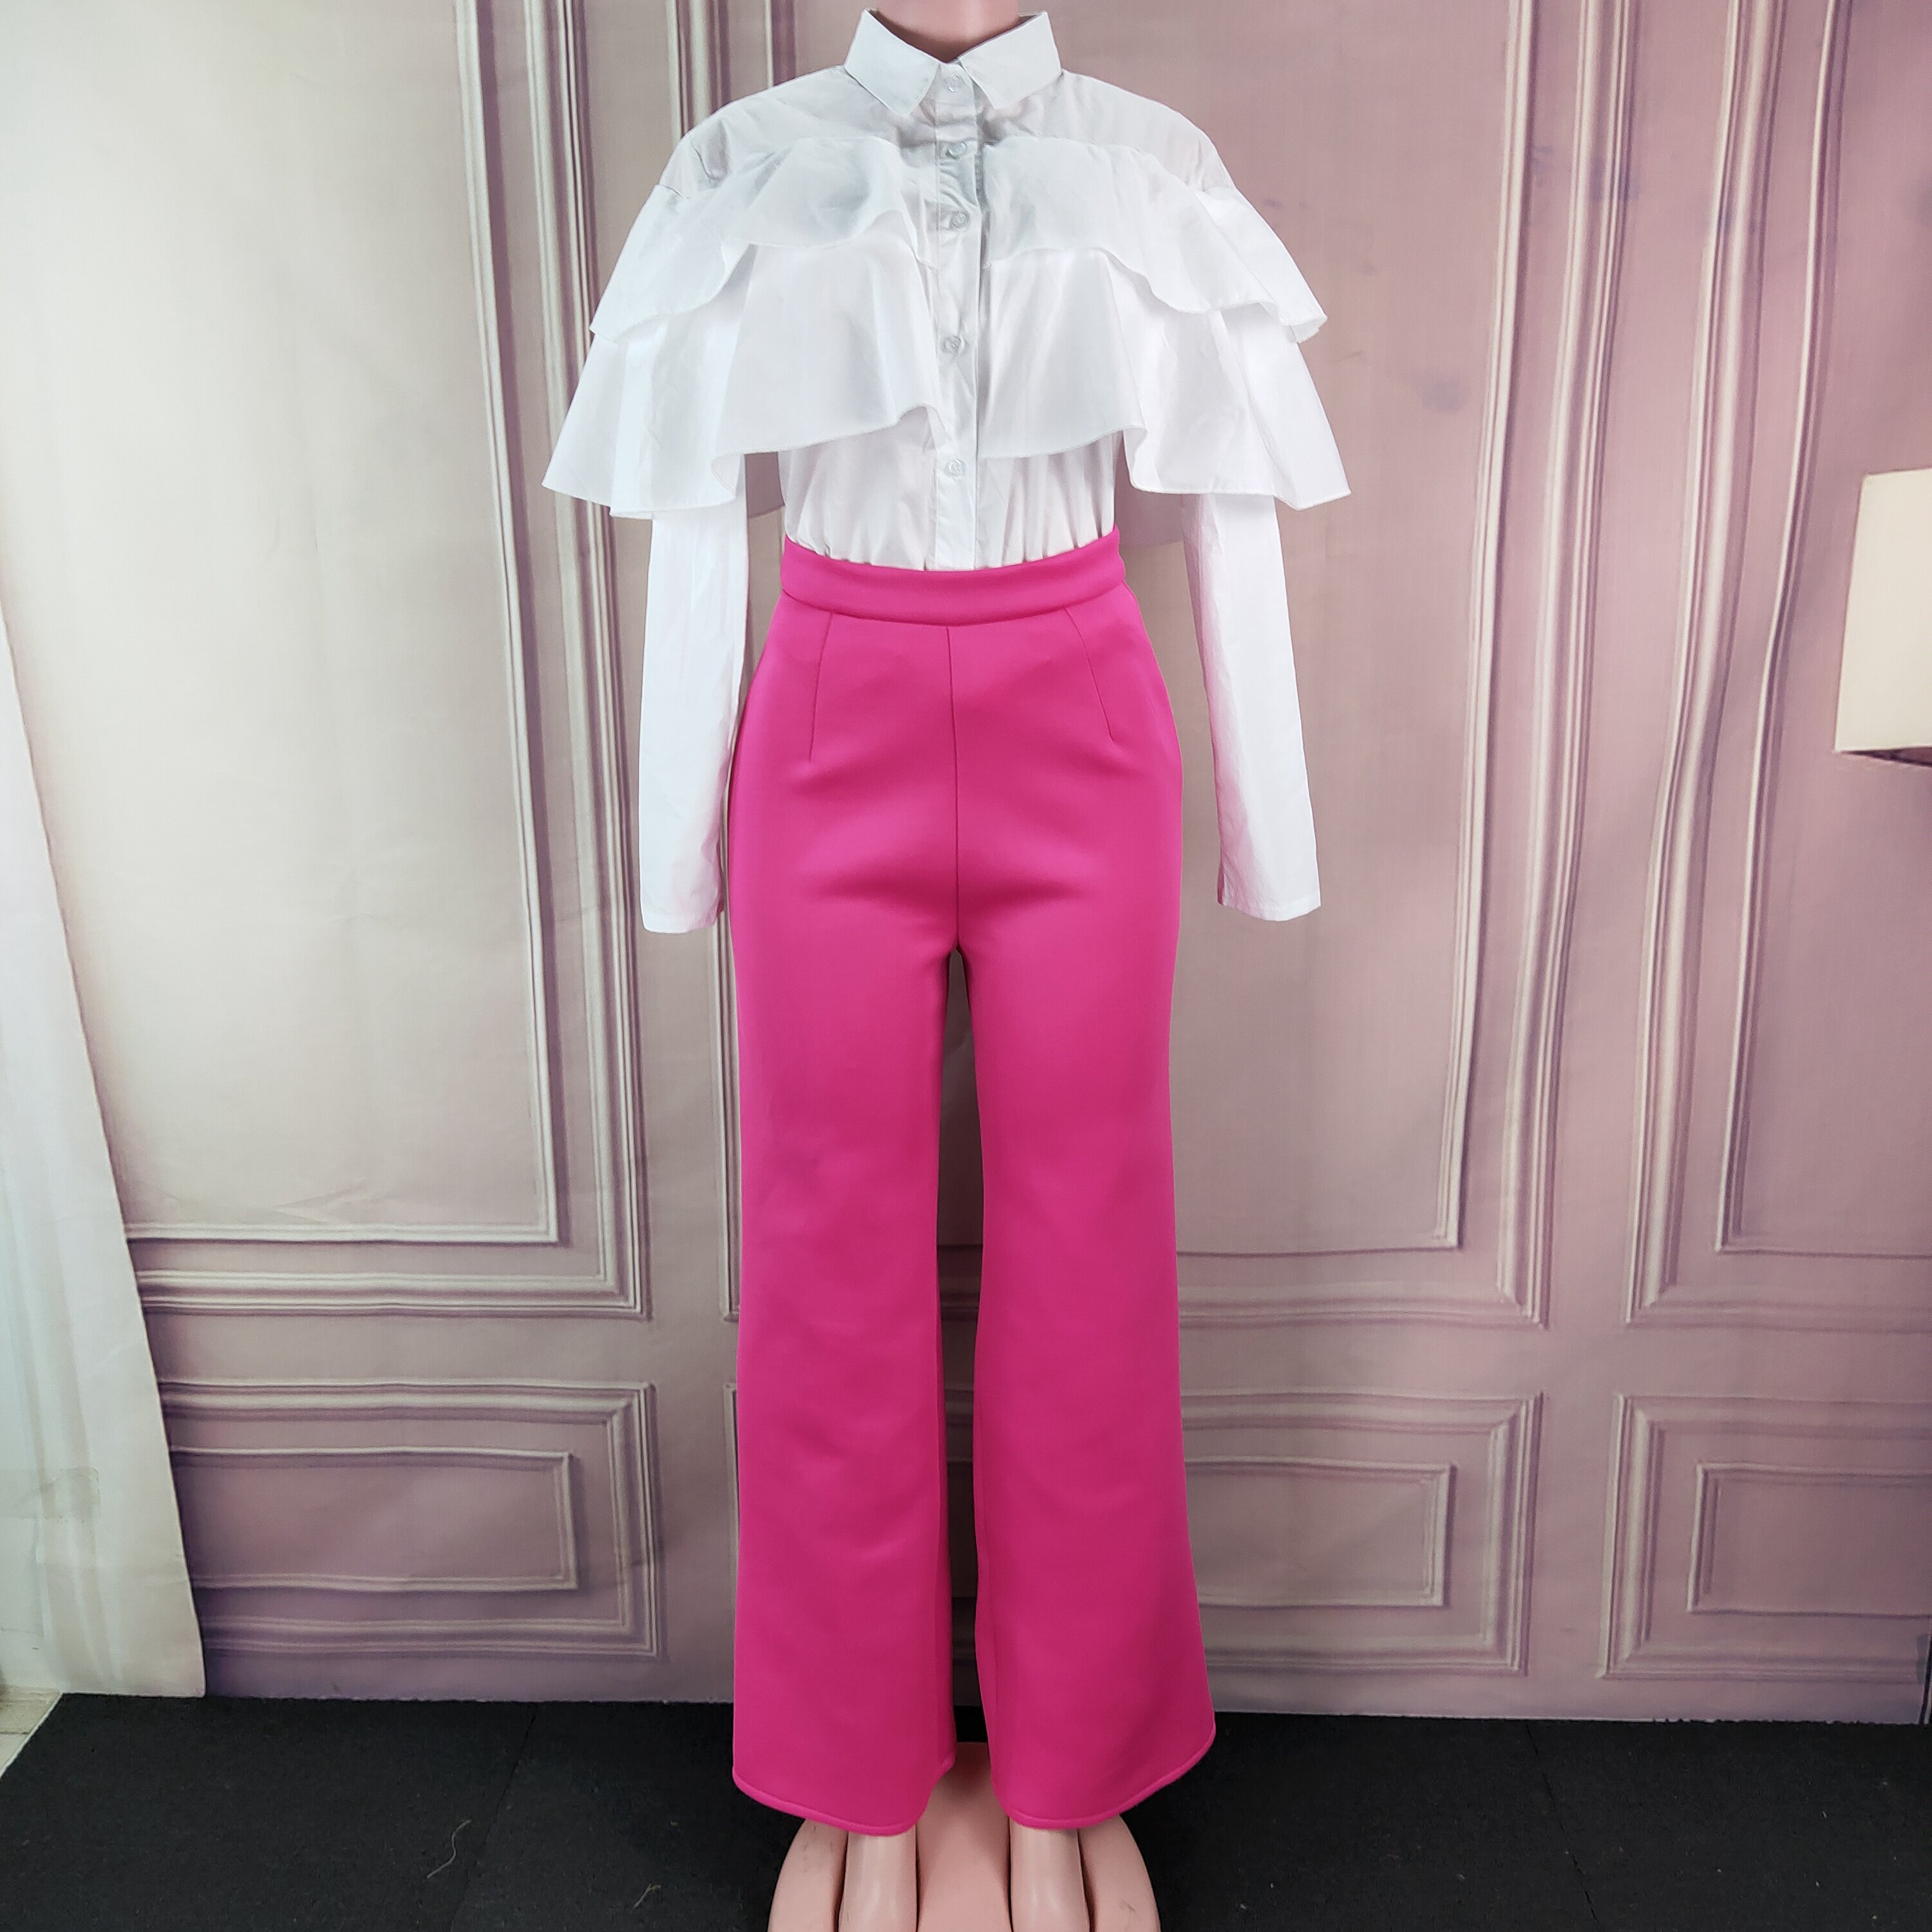 Women 2 Pieces Sets White Shirt Tops With Rose Red Wide Leg Pants Ruffles Elegant Office Ladies Work Classy Suit Modest Female